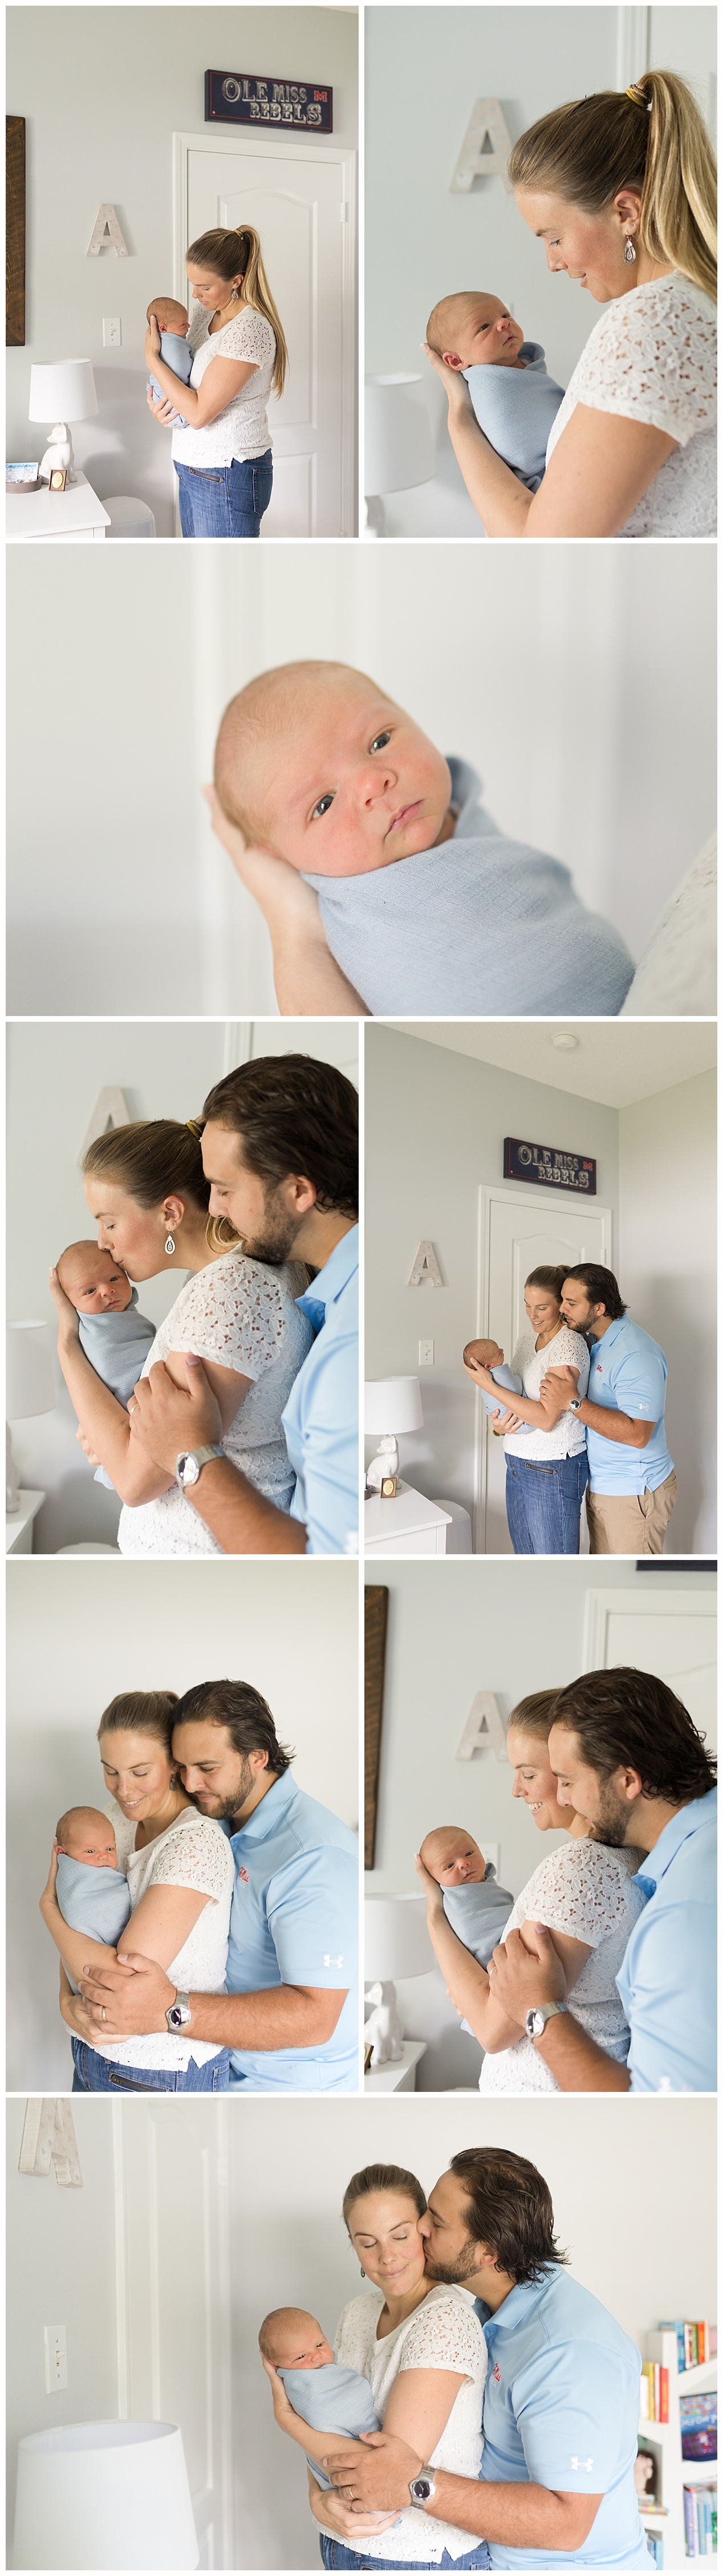 baby boy with parents in nursery - Ocean Springs baby photographer